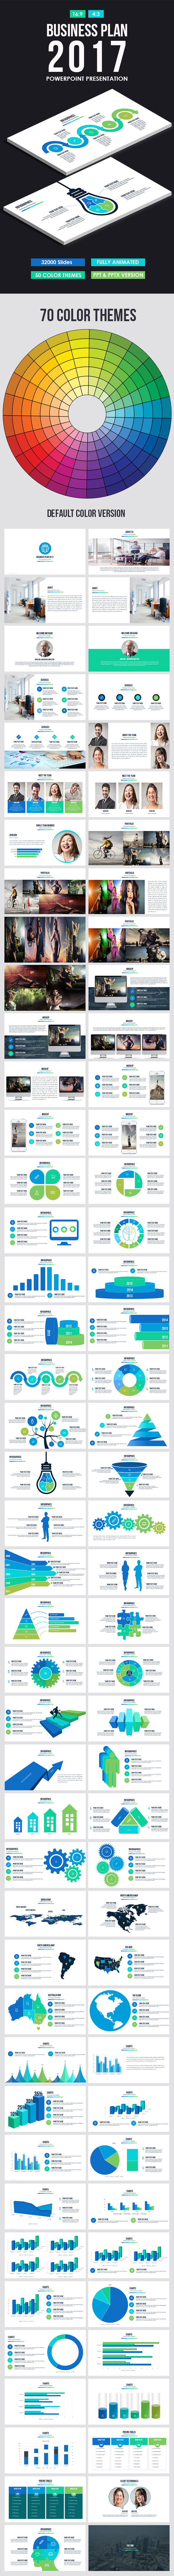 Business Plan 2017 Powerpoint Presentation - Business PowerPoint Templates